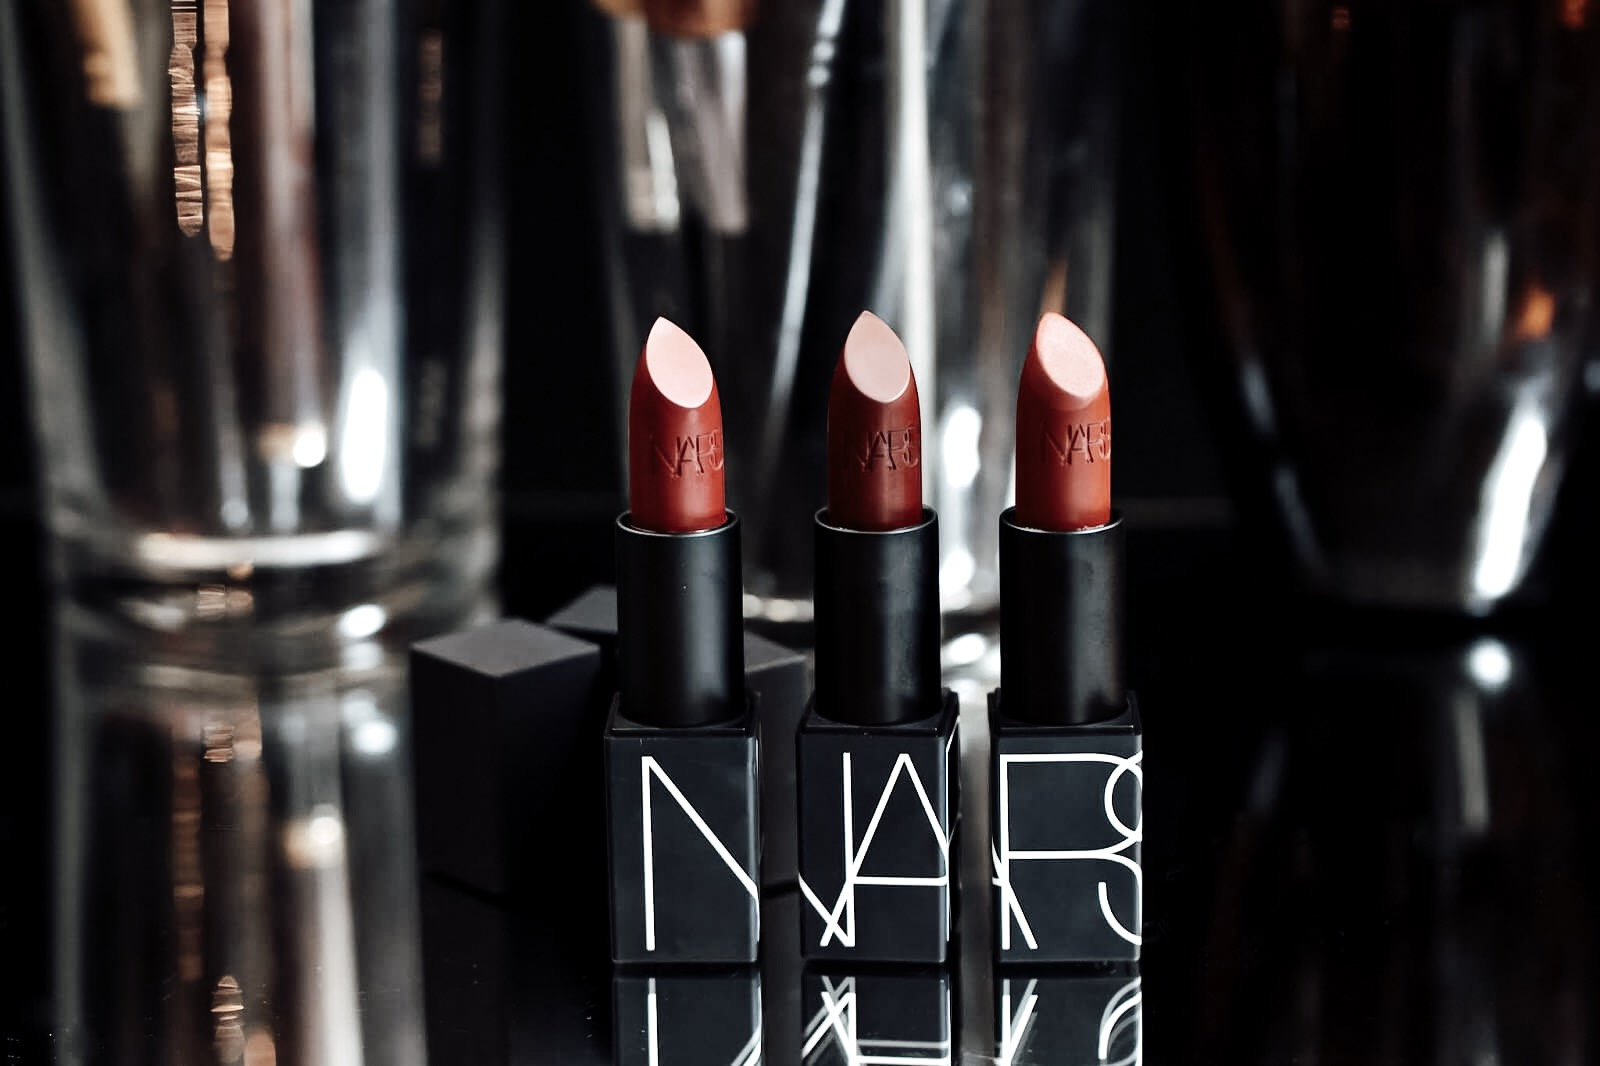 nars-iconic-lipstick-rouge-aleres-iconique-avis-test-swatch-matte-mate